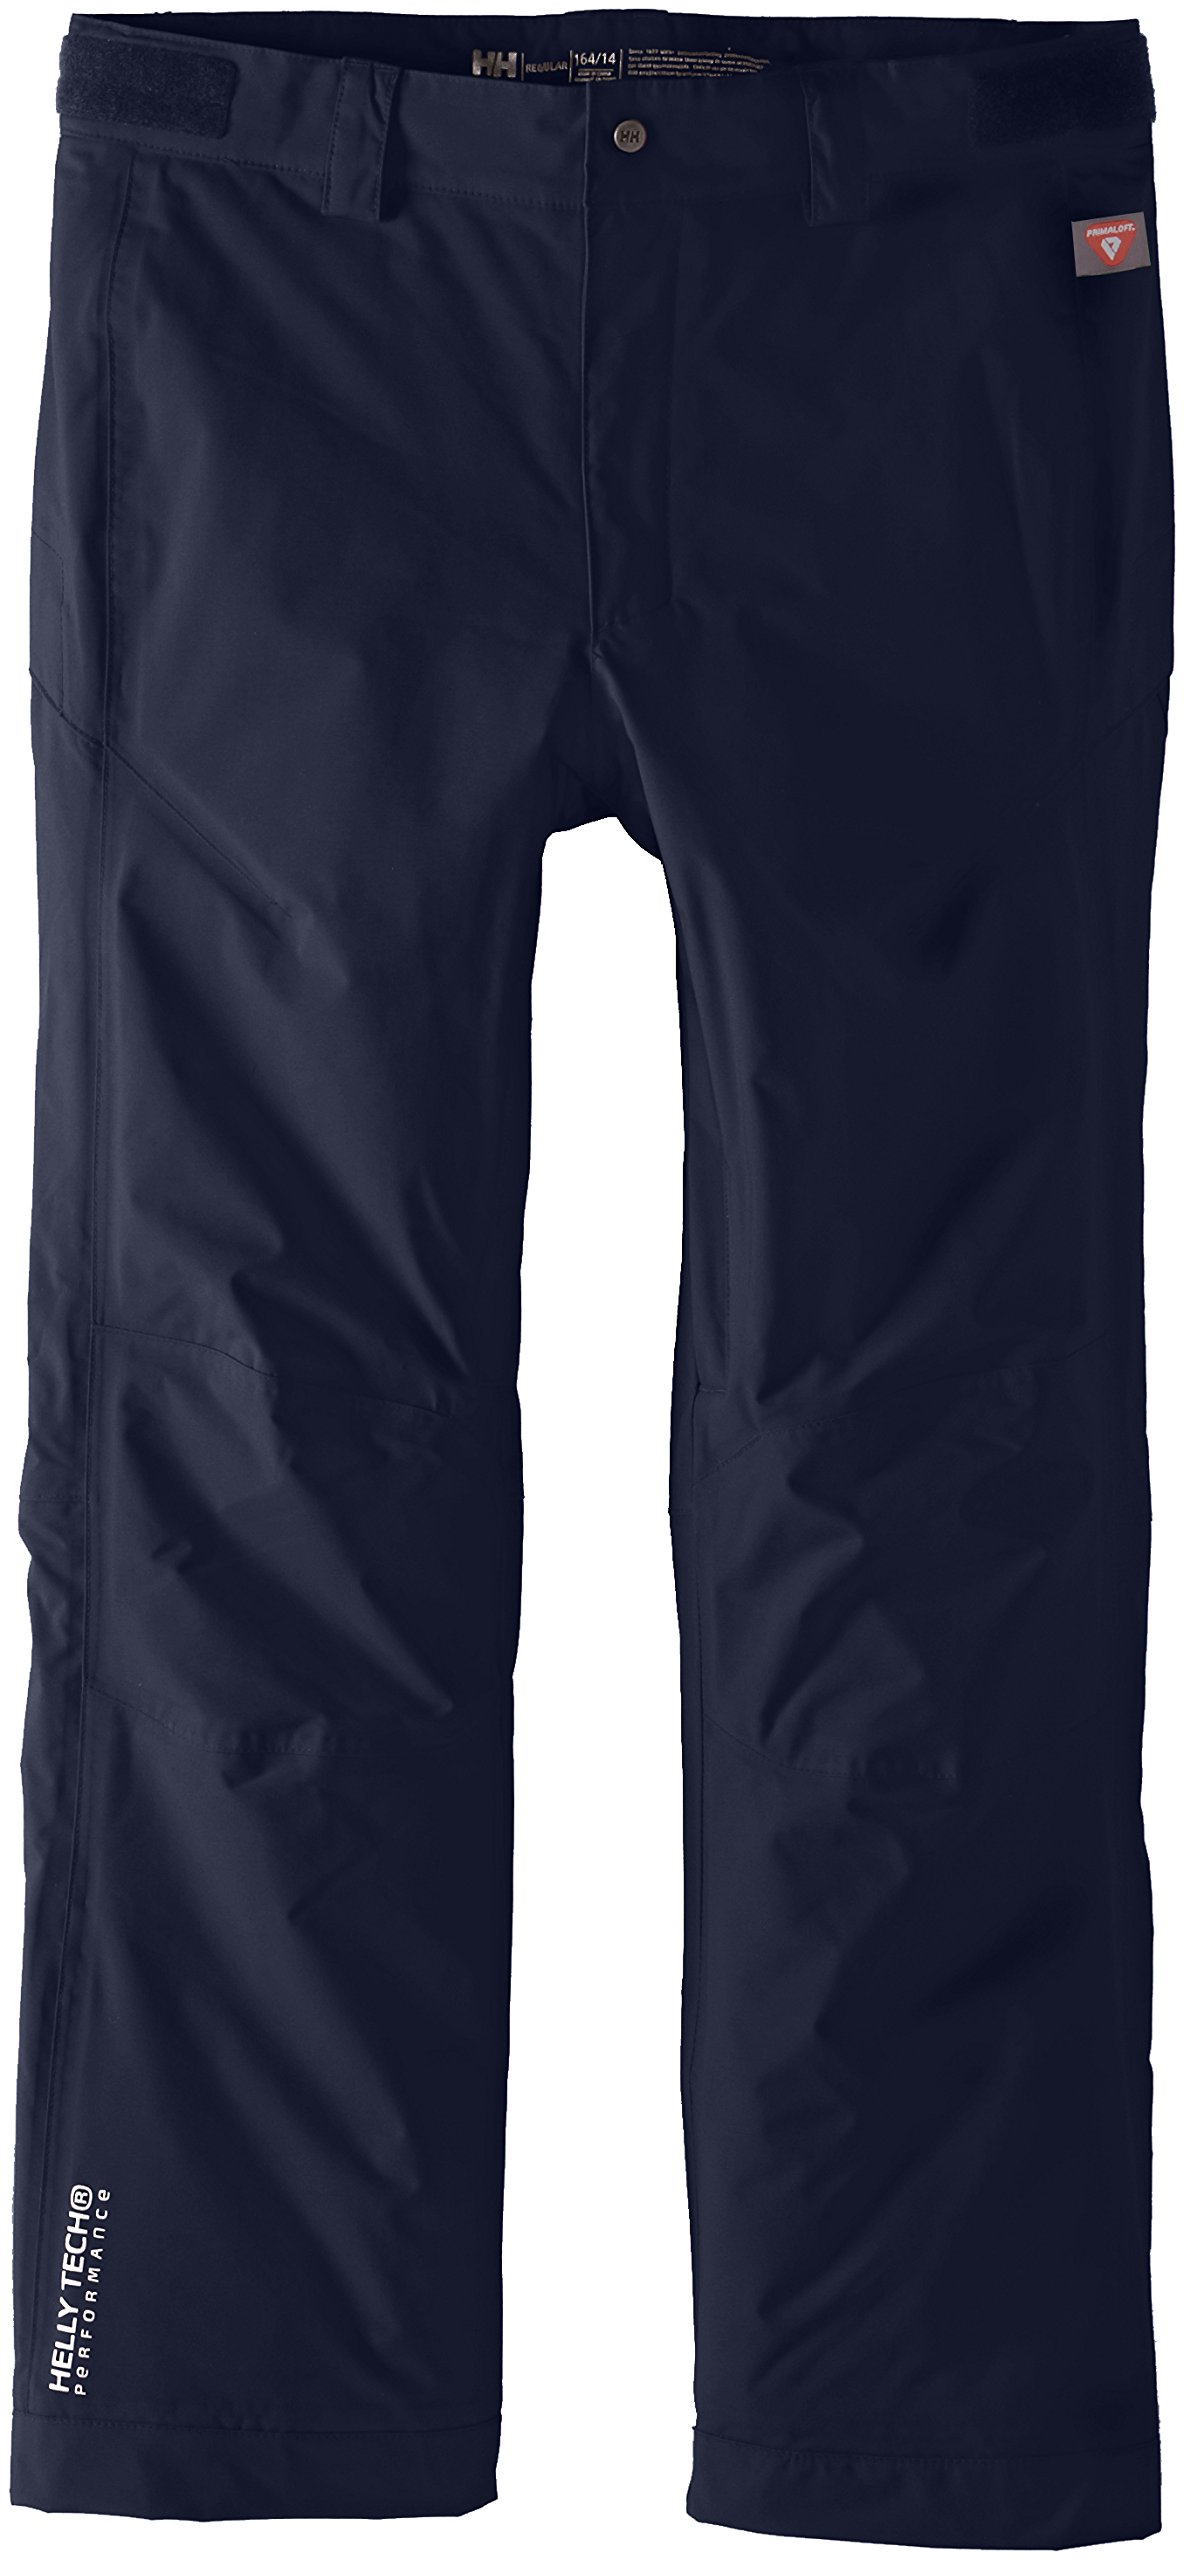 Helly Hansen Junior Kids Legend Insulated Pants, Evening Blue, Size 16